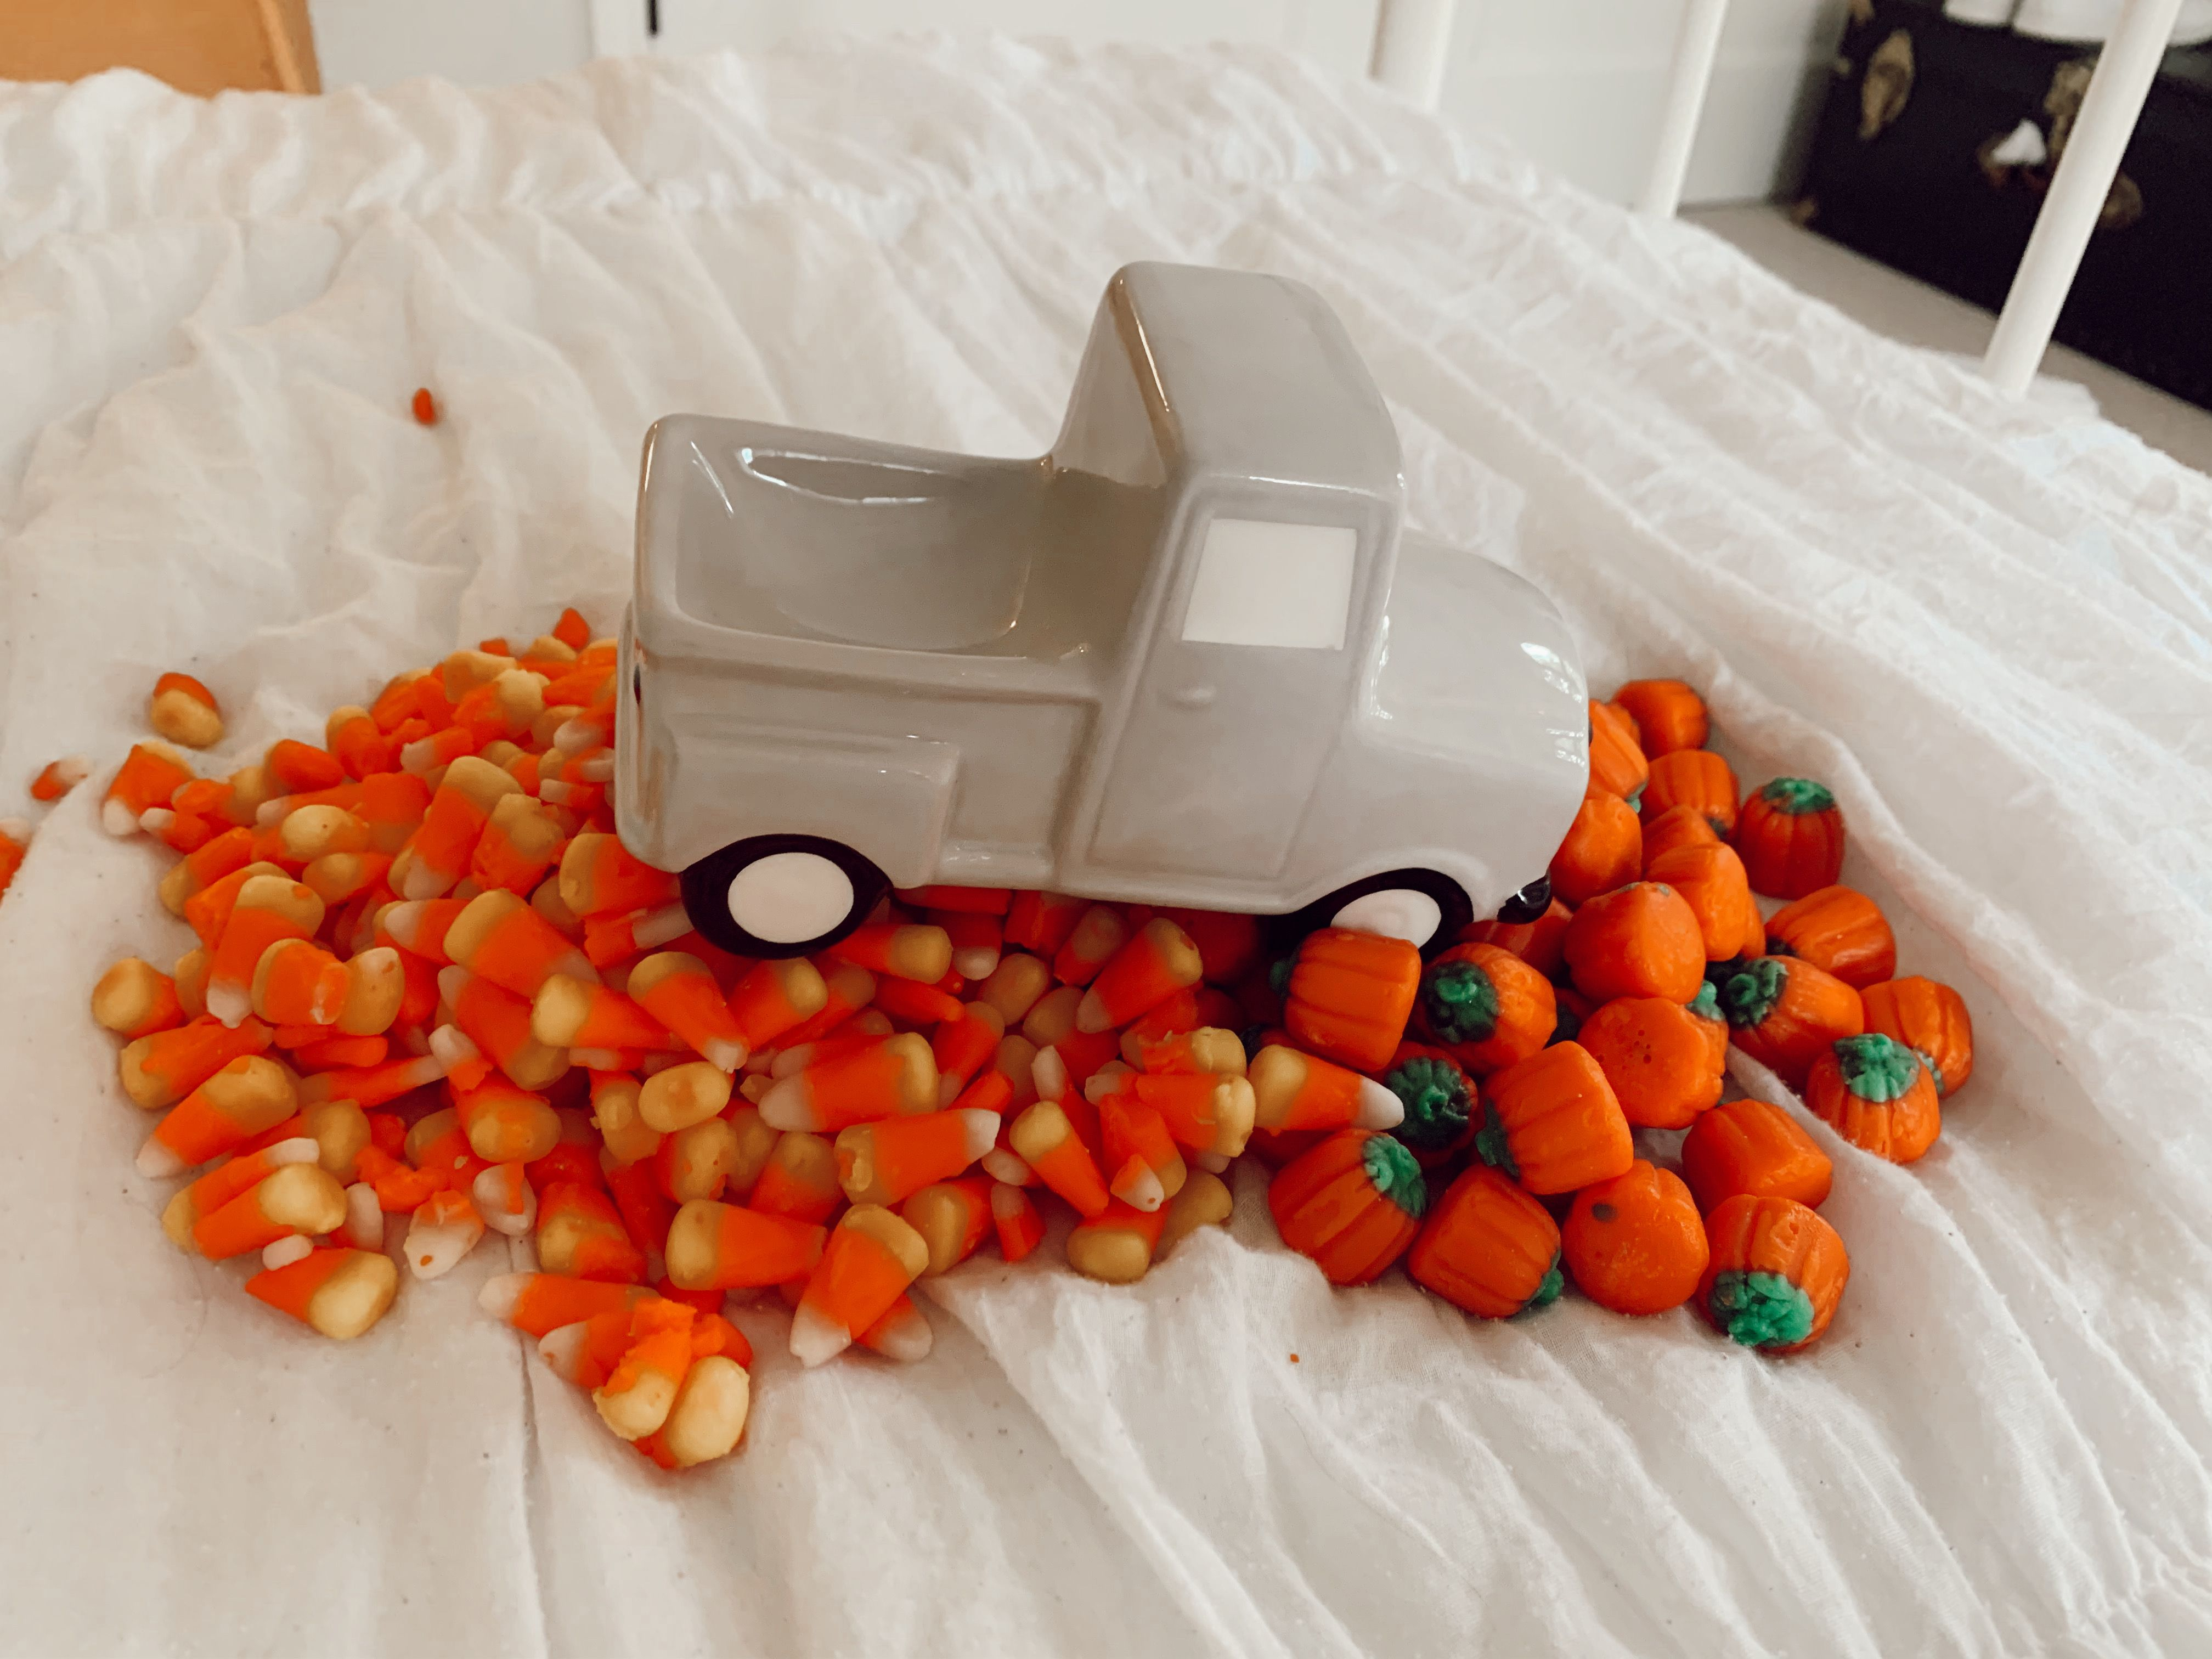 Pin by Shyla on Fall in 2020 New england fall, Toy car